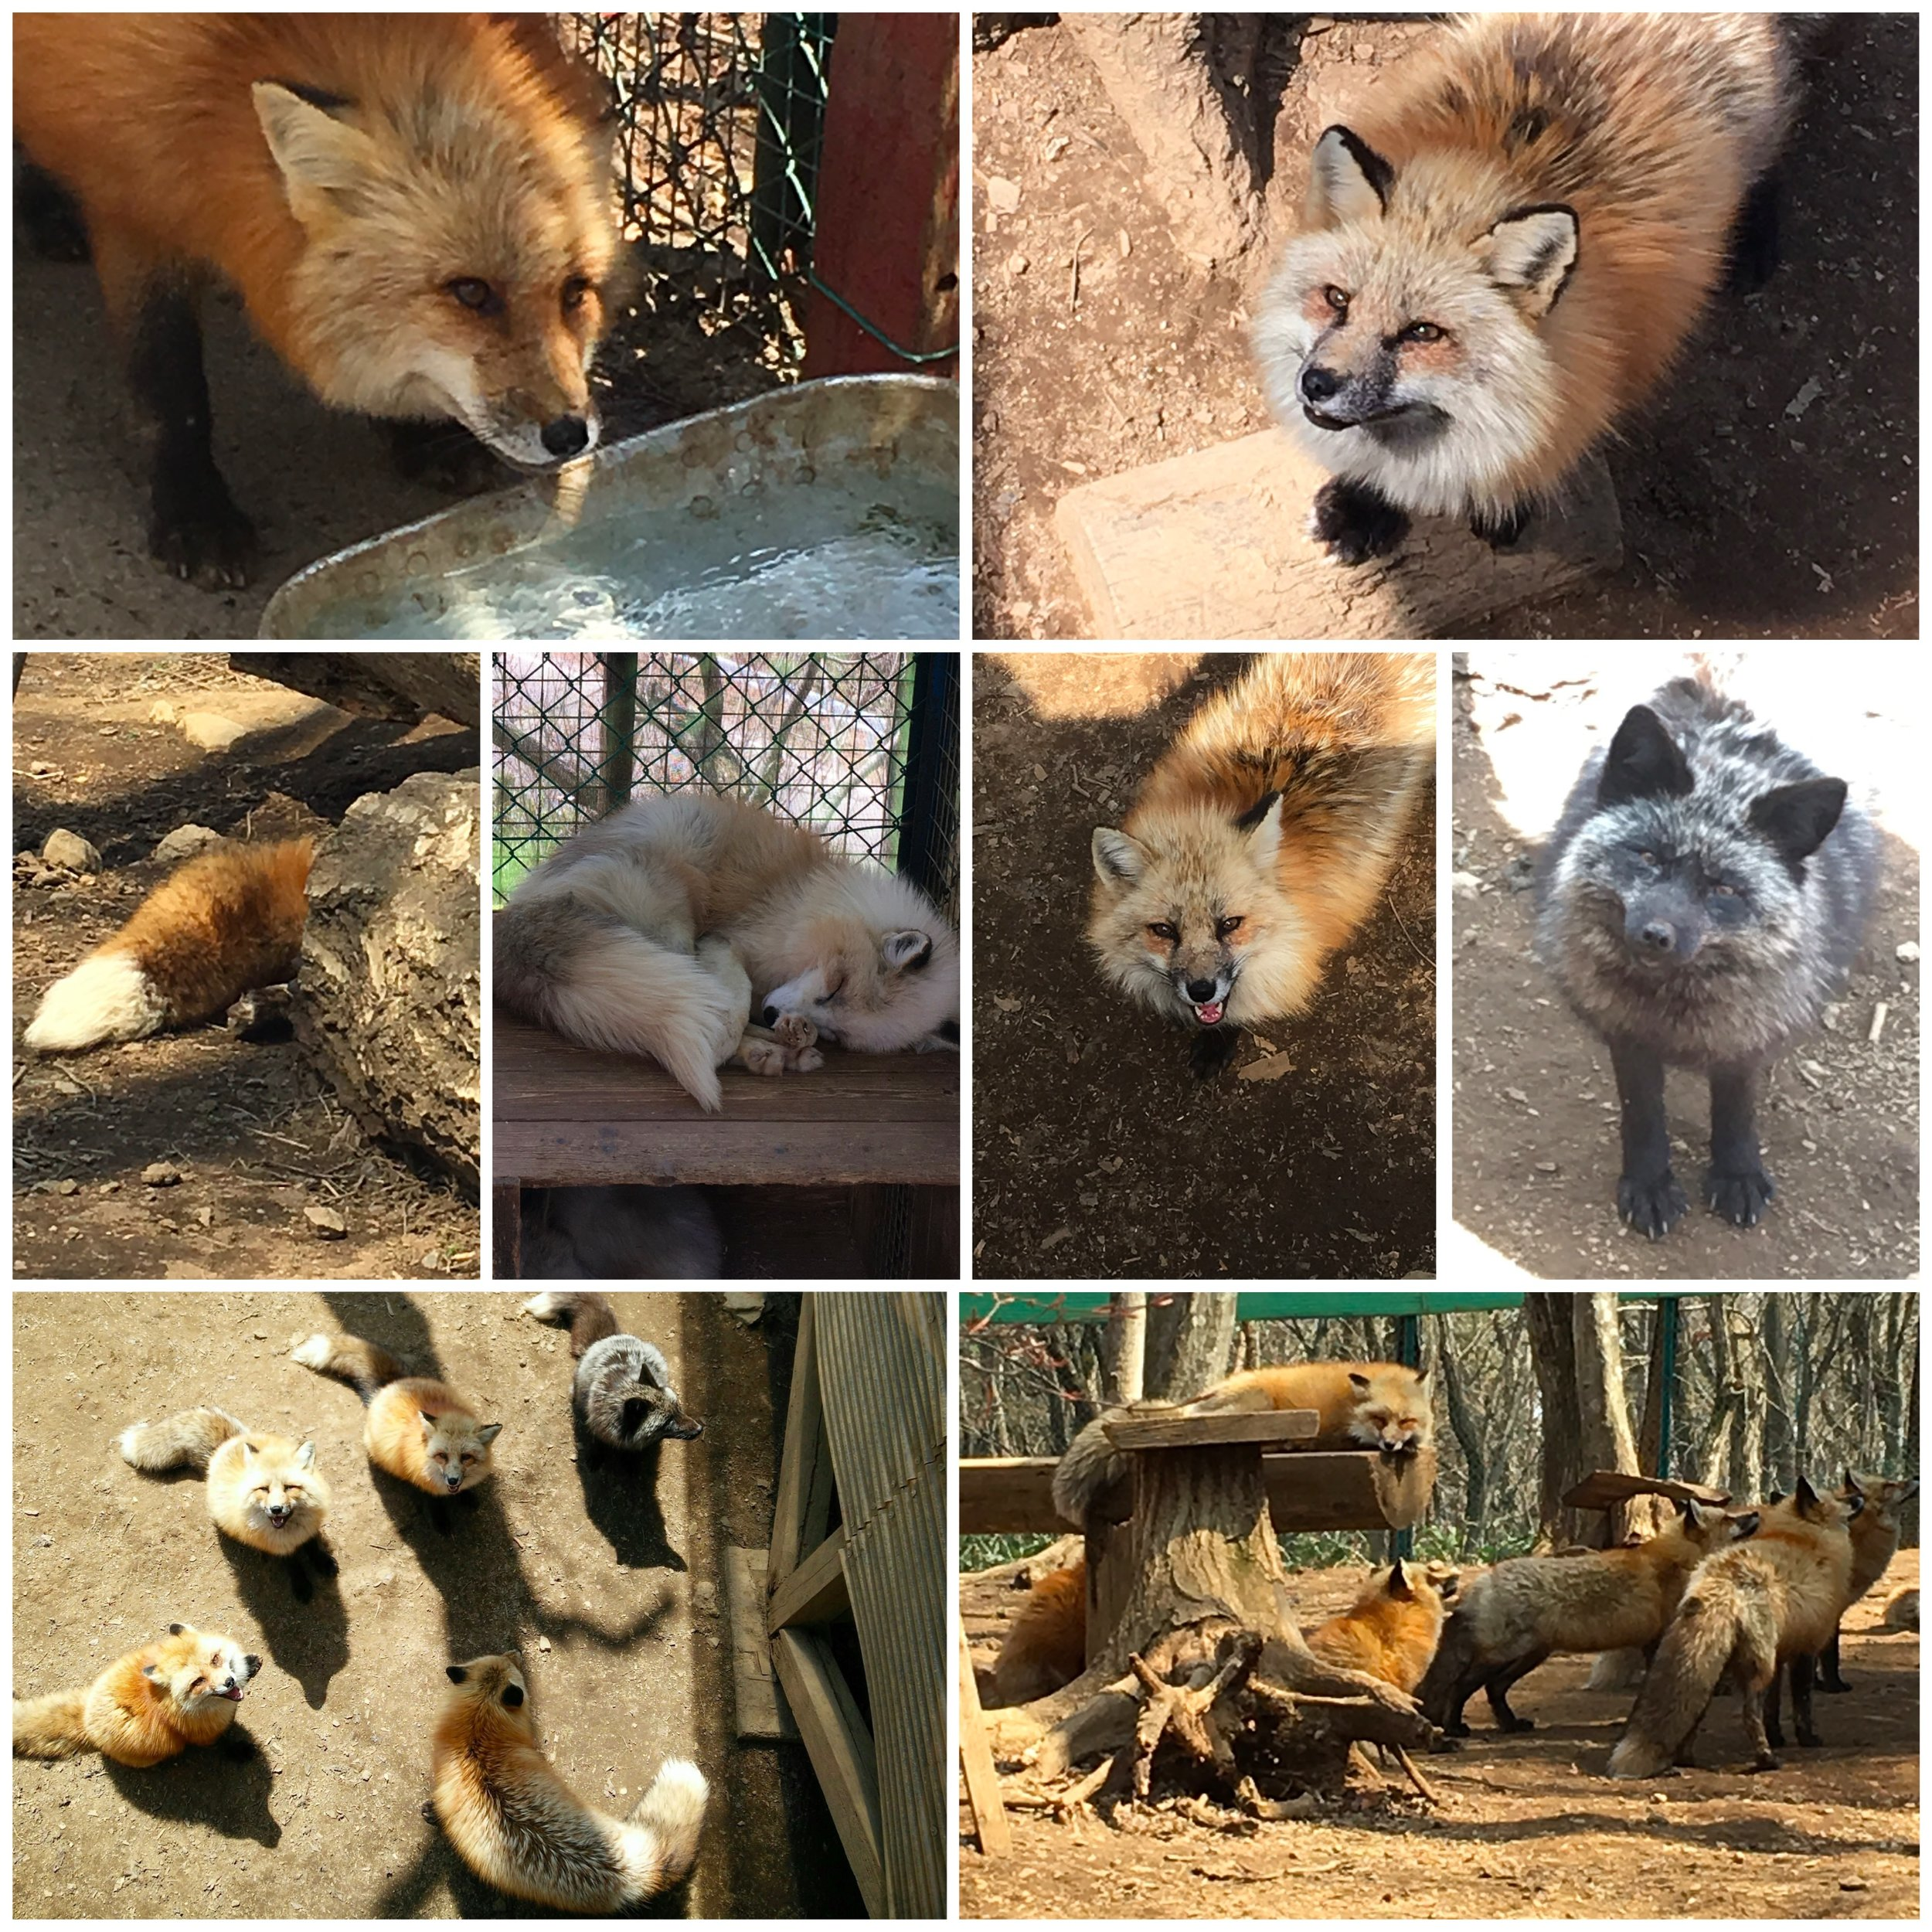 Foxes and more foxes